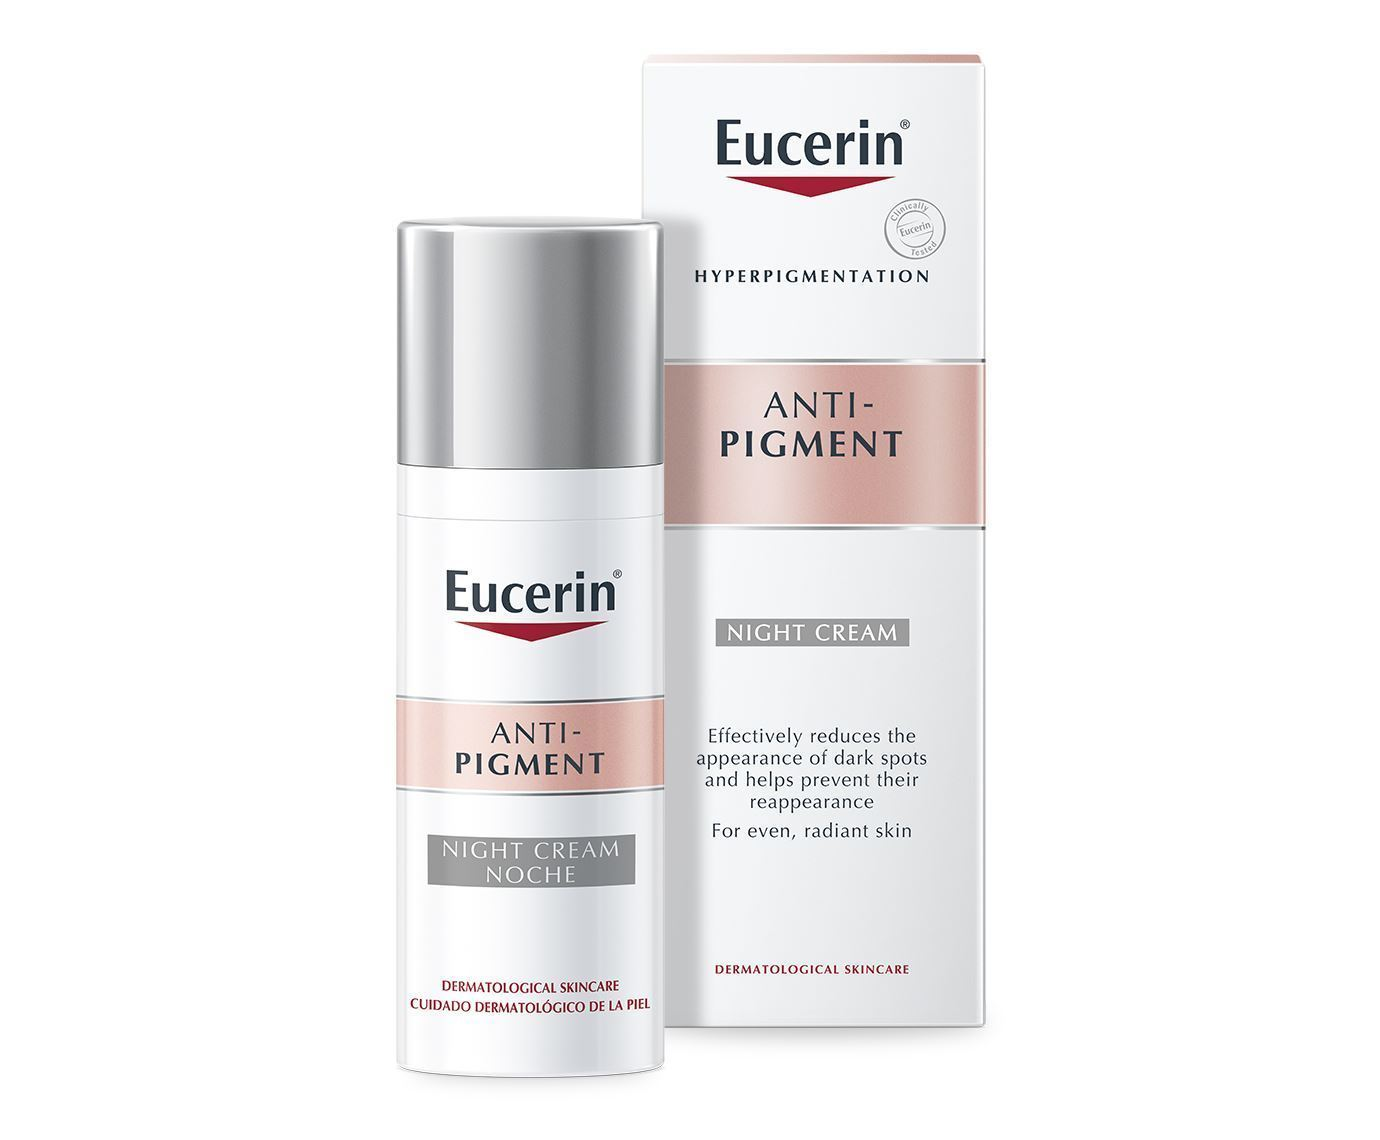 Eucerin Anti-Pigment Night Cream 50ml - $34.65